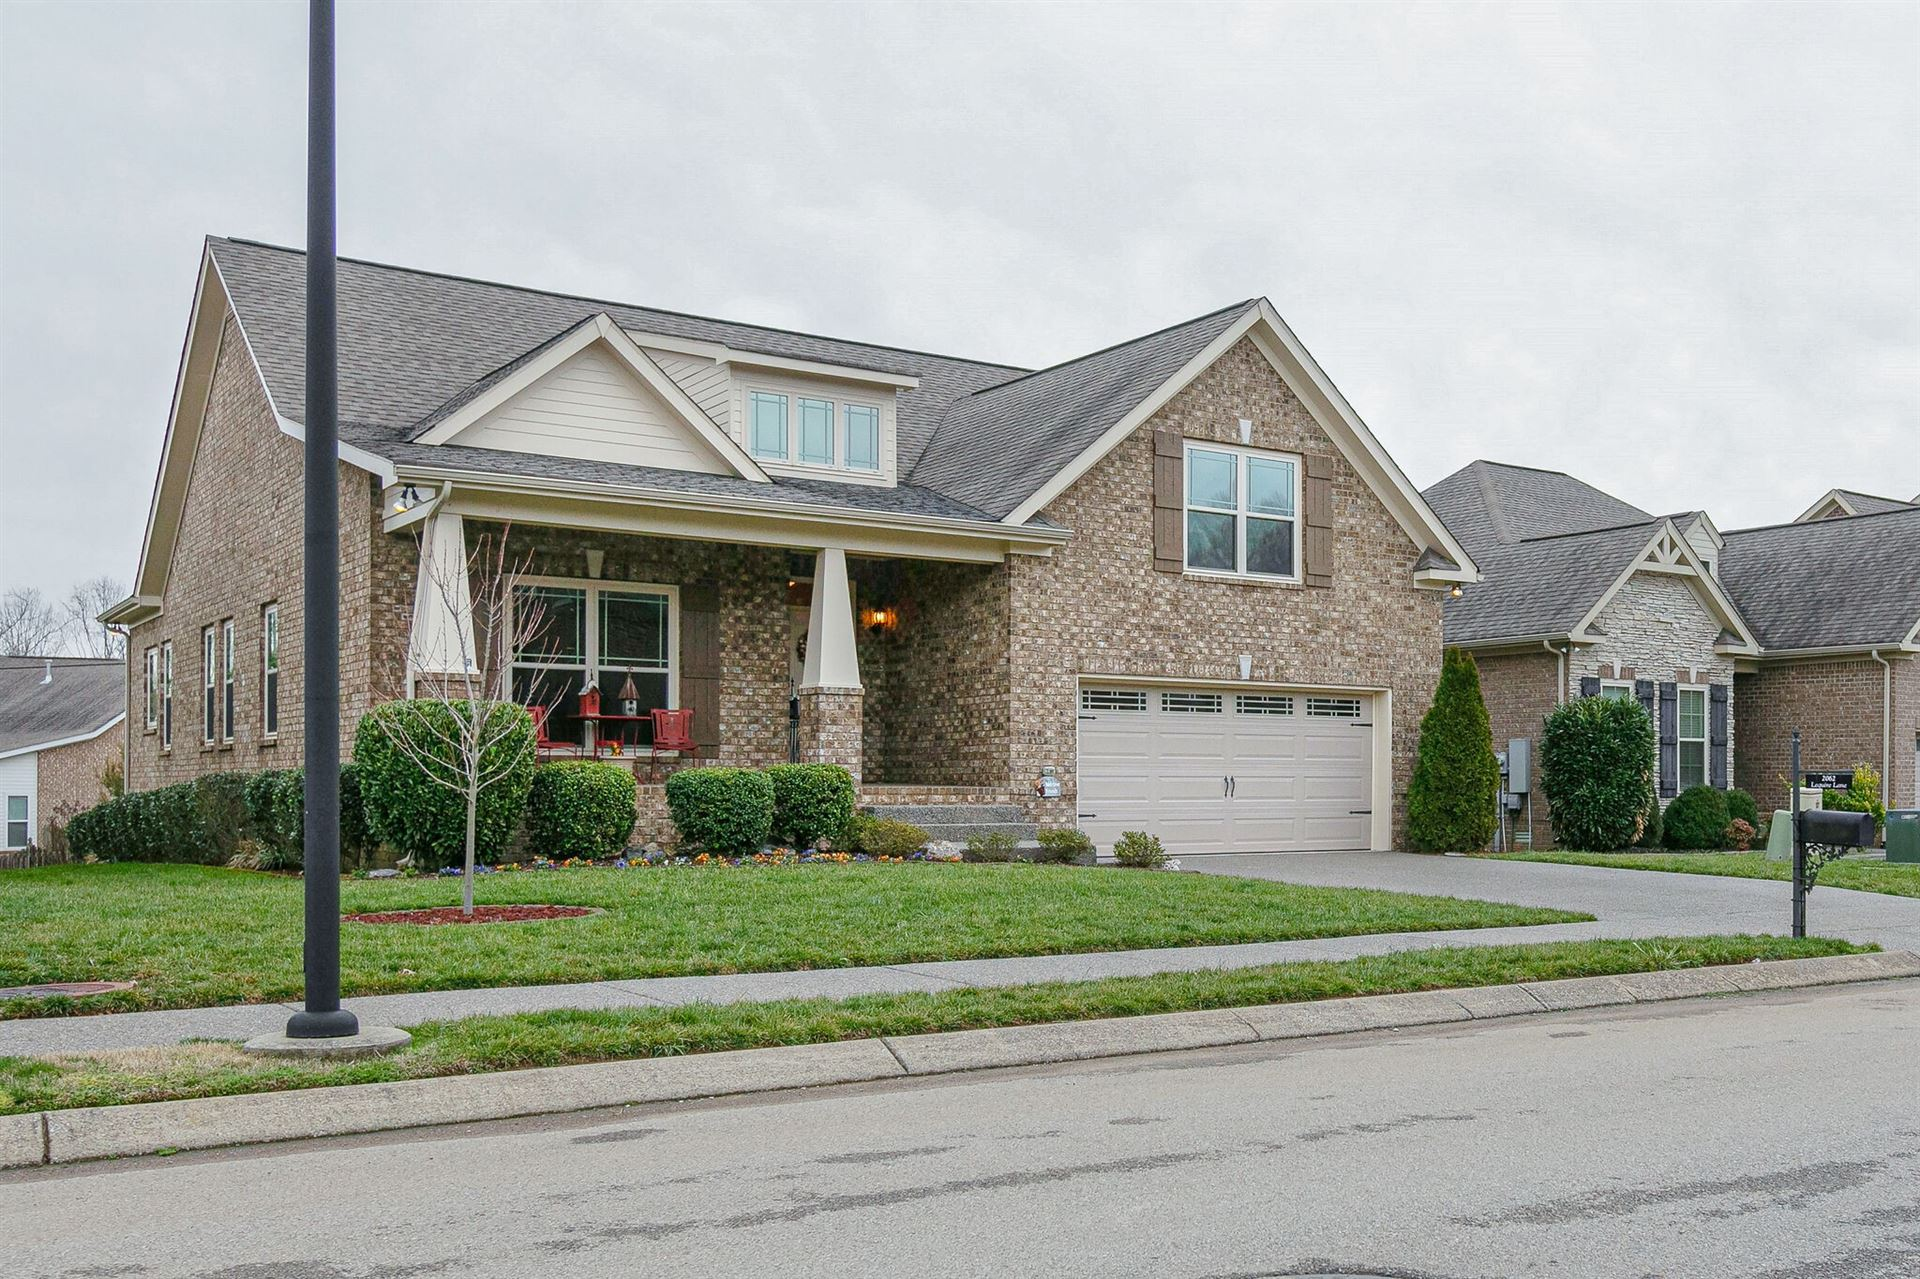 Photo of 2062 Lequire Ln, Spring Hill, TN 37174 (MLS # 2232452)